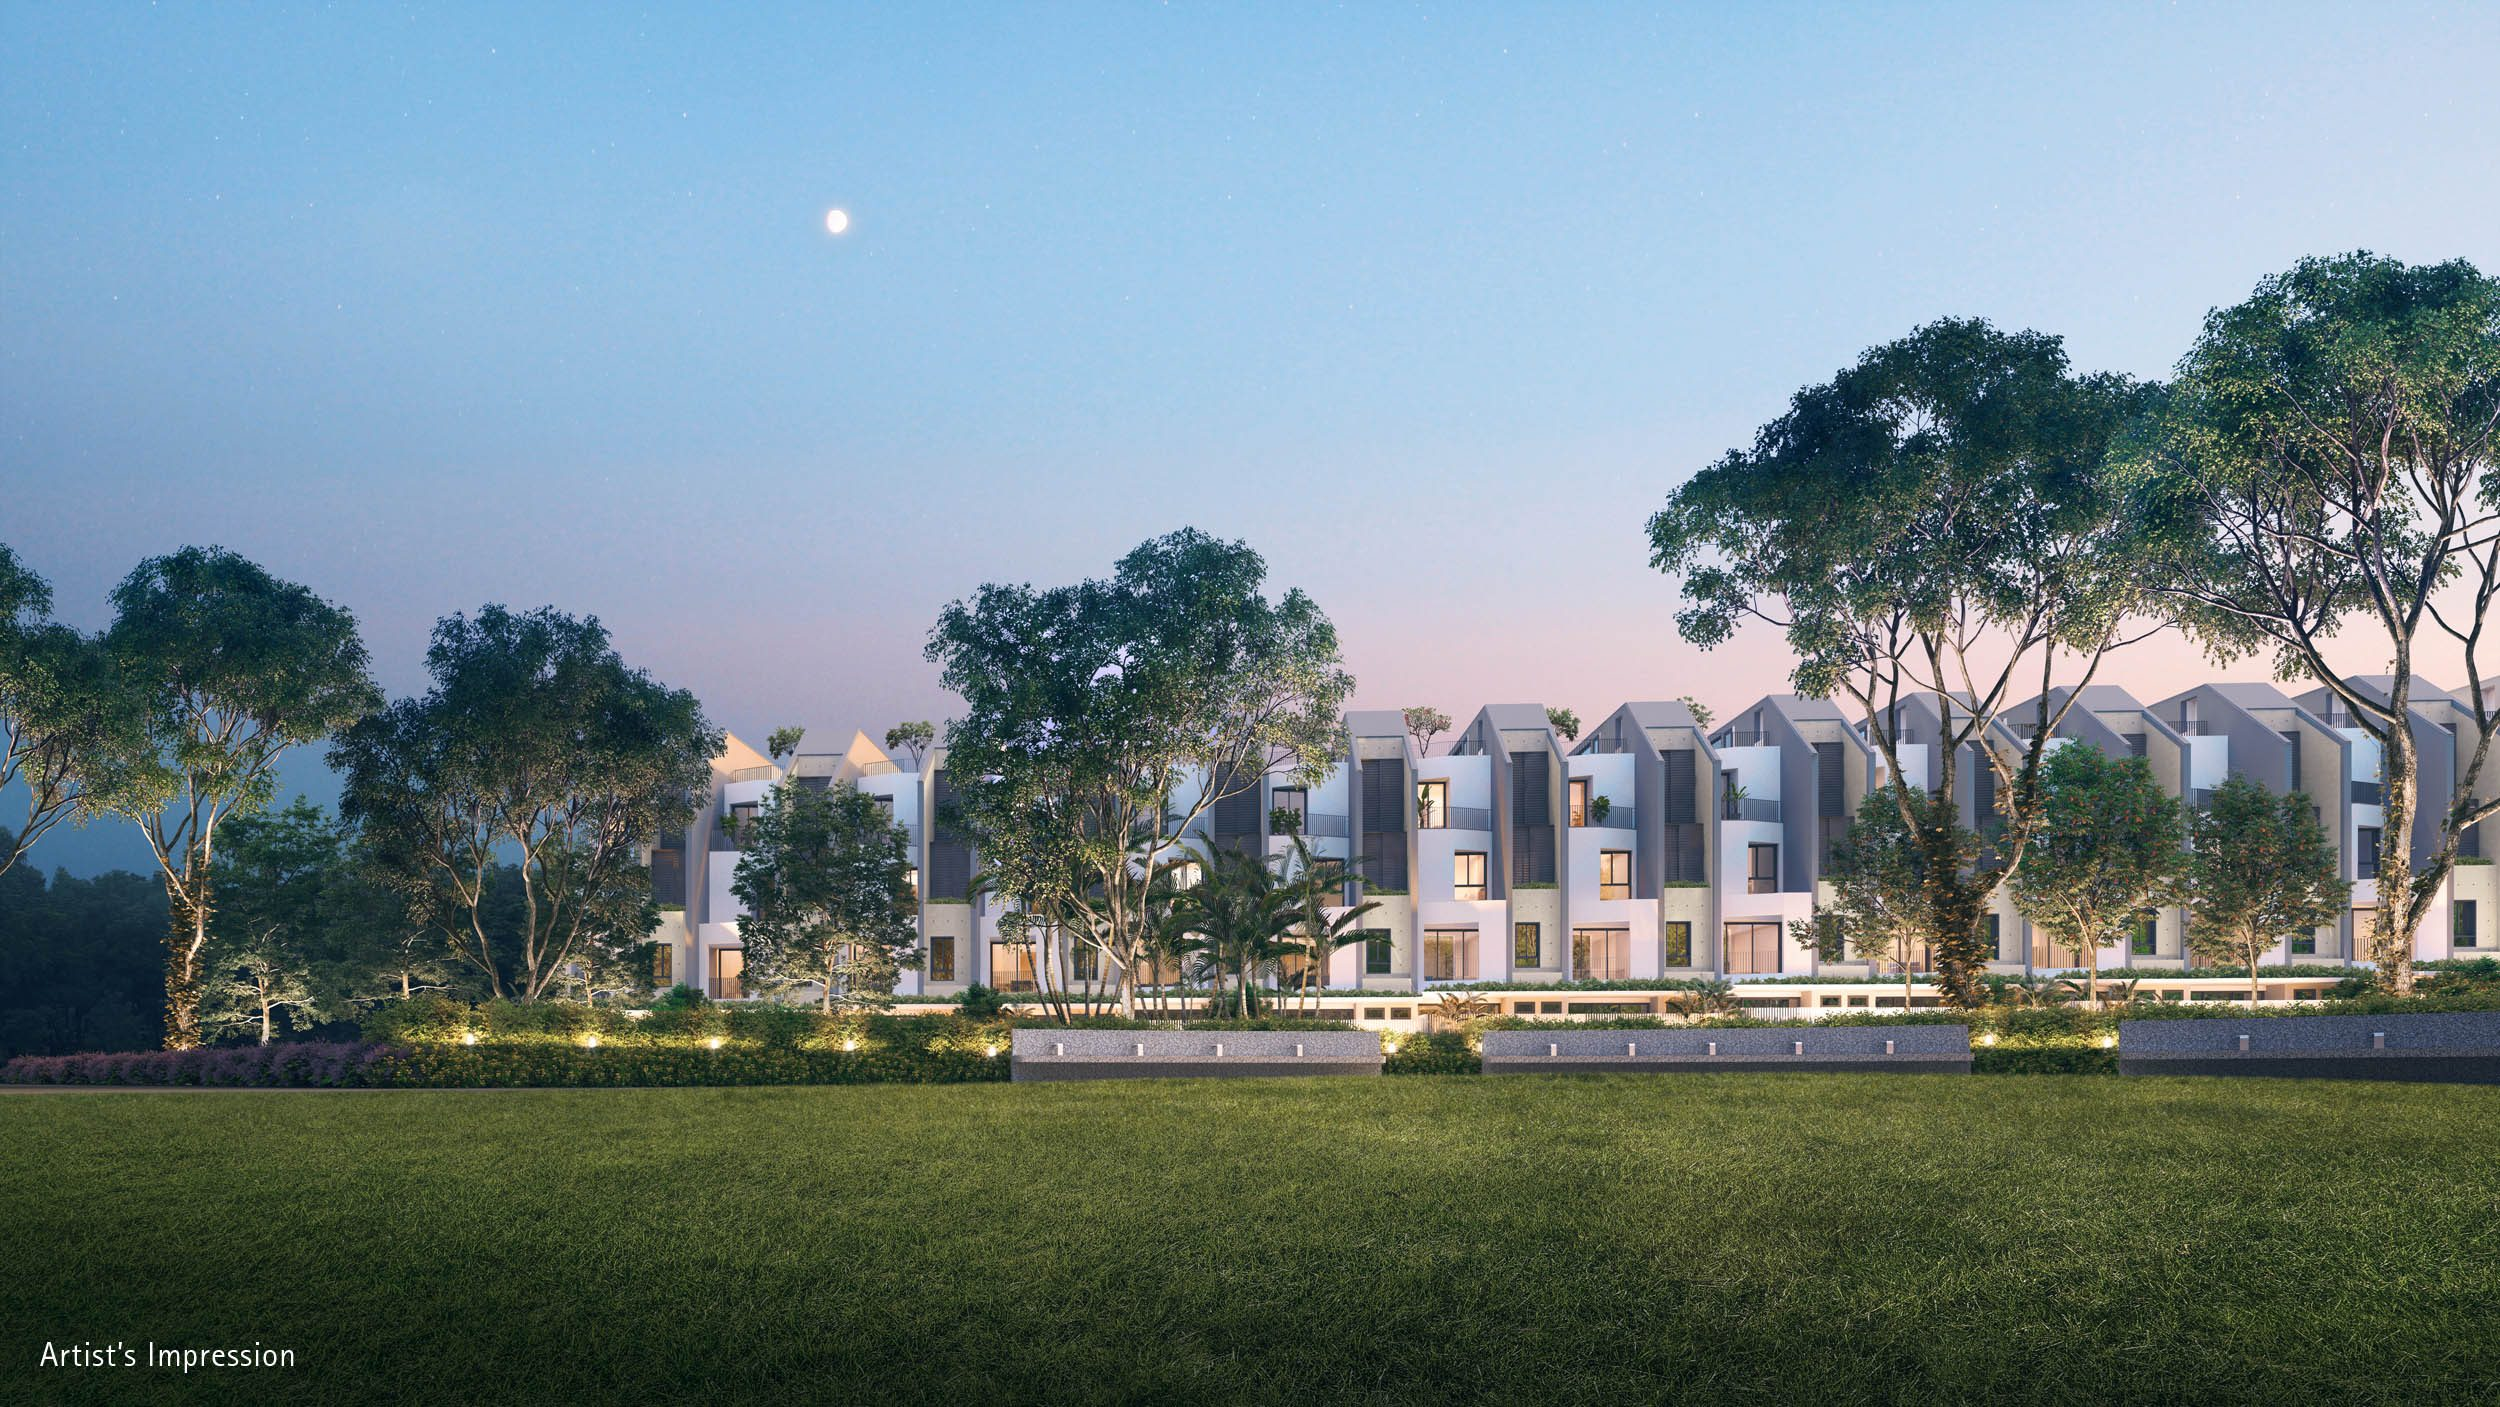 Vmw is a leading architectural visualization consultancy firm in Singapore.